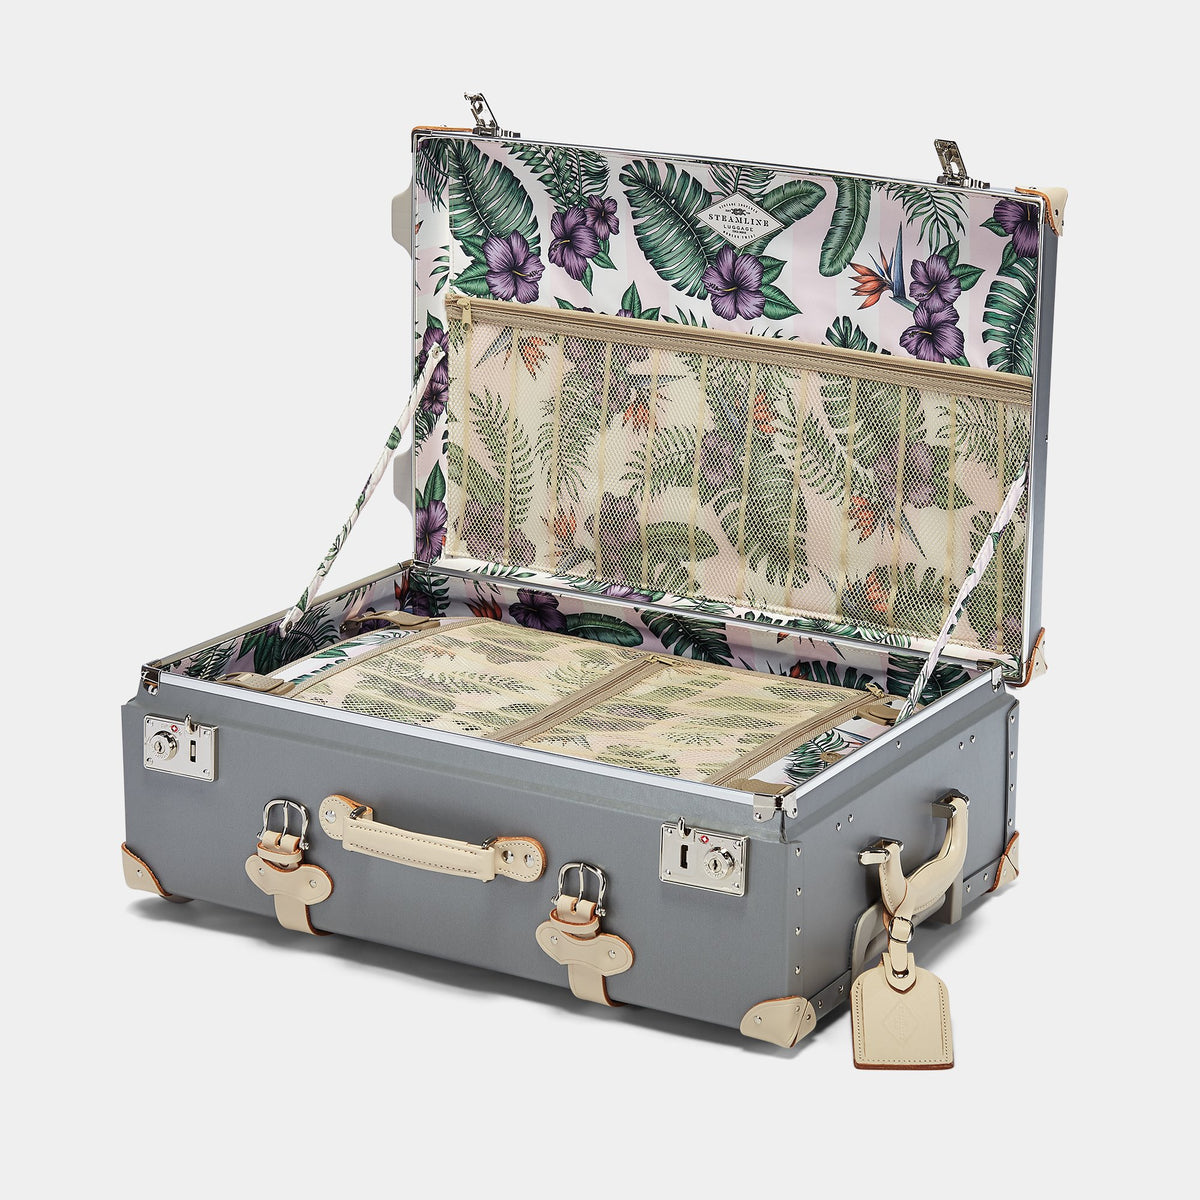 The Botanist Stowaway in Grey - Vintage-Inspired Luggage - Interior Front